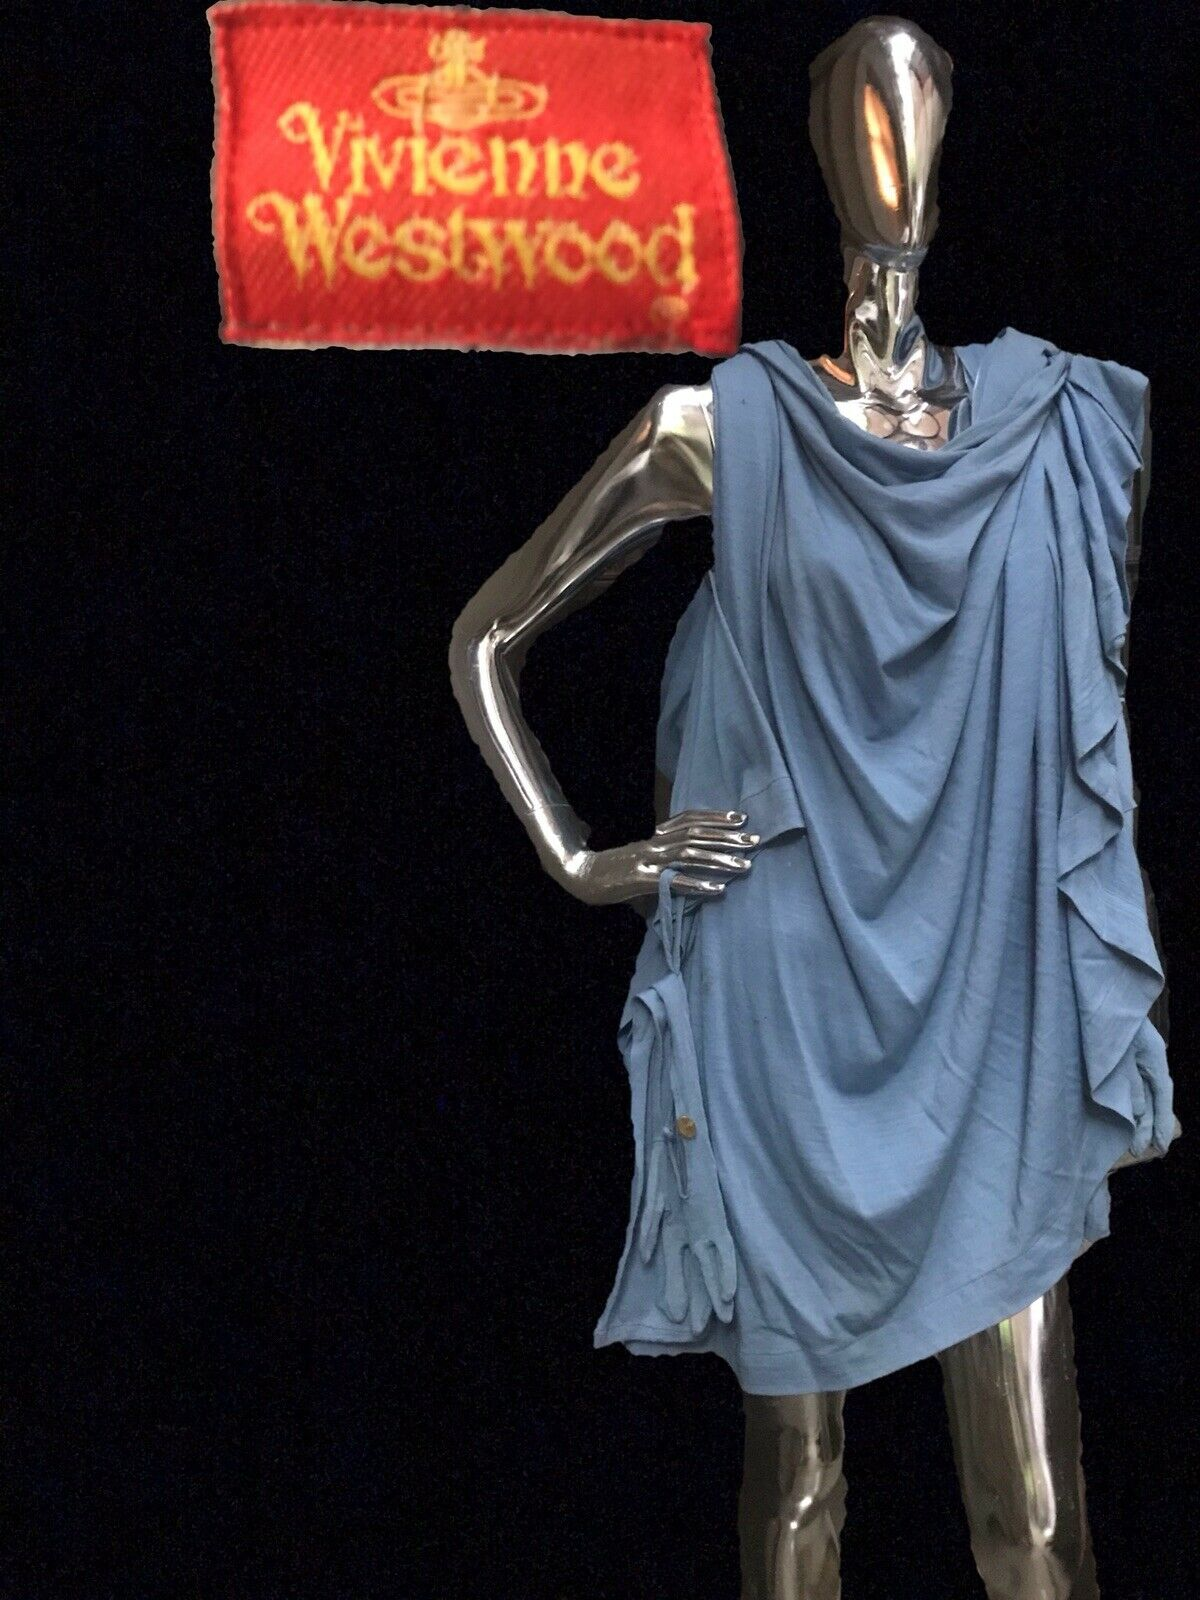 Vivienne Westwood VTG 80s Runway Dress Cape Wool Toga Britain Must Go Pagan Punk